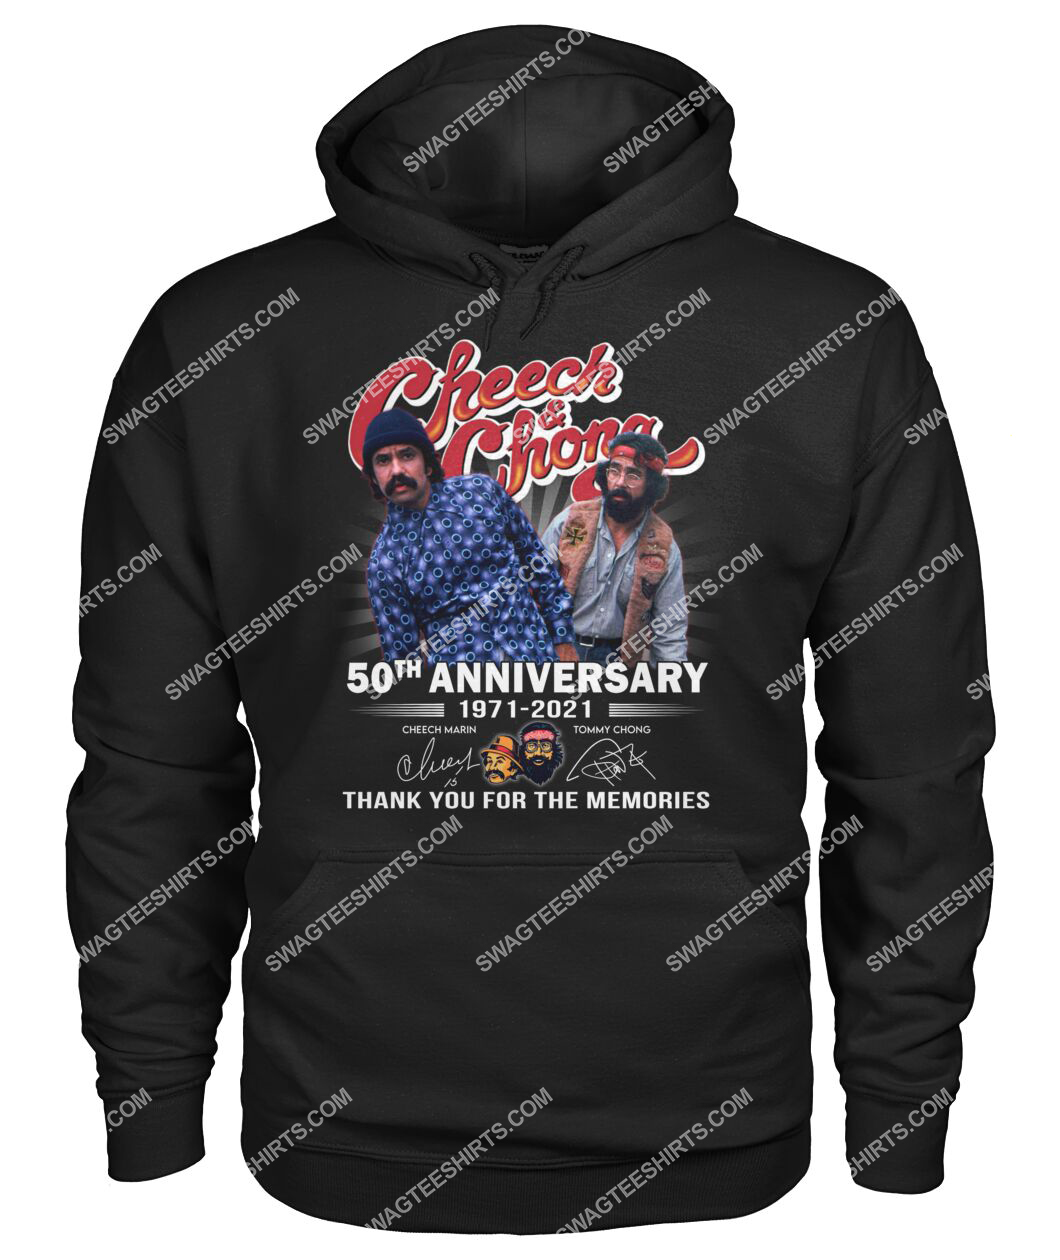 cheech and chong 50th anniversary signatures thank you for memories hoodie 1